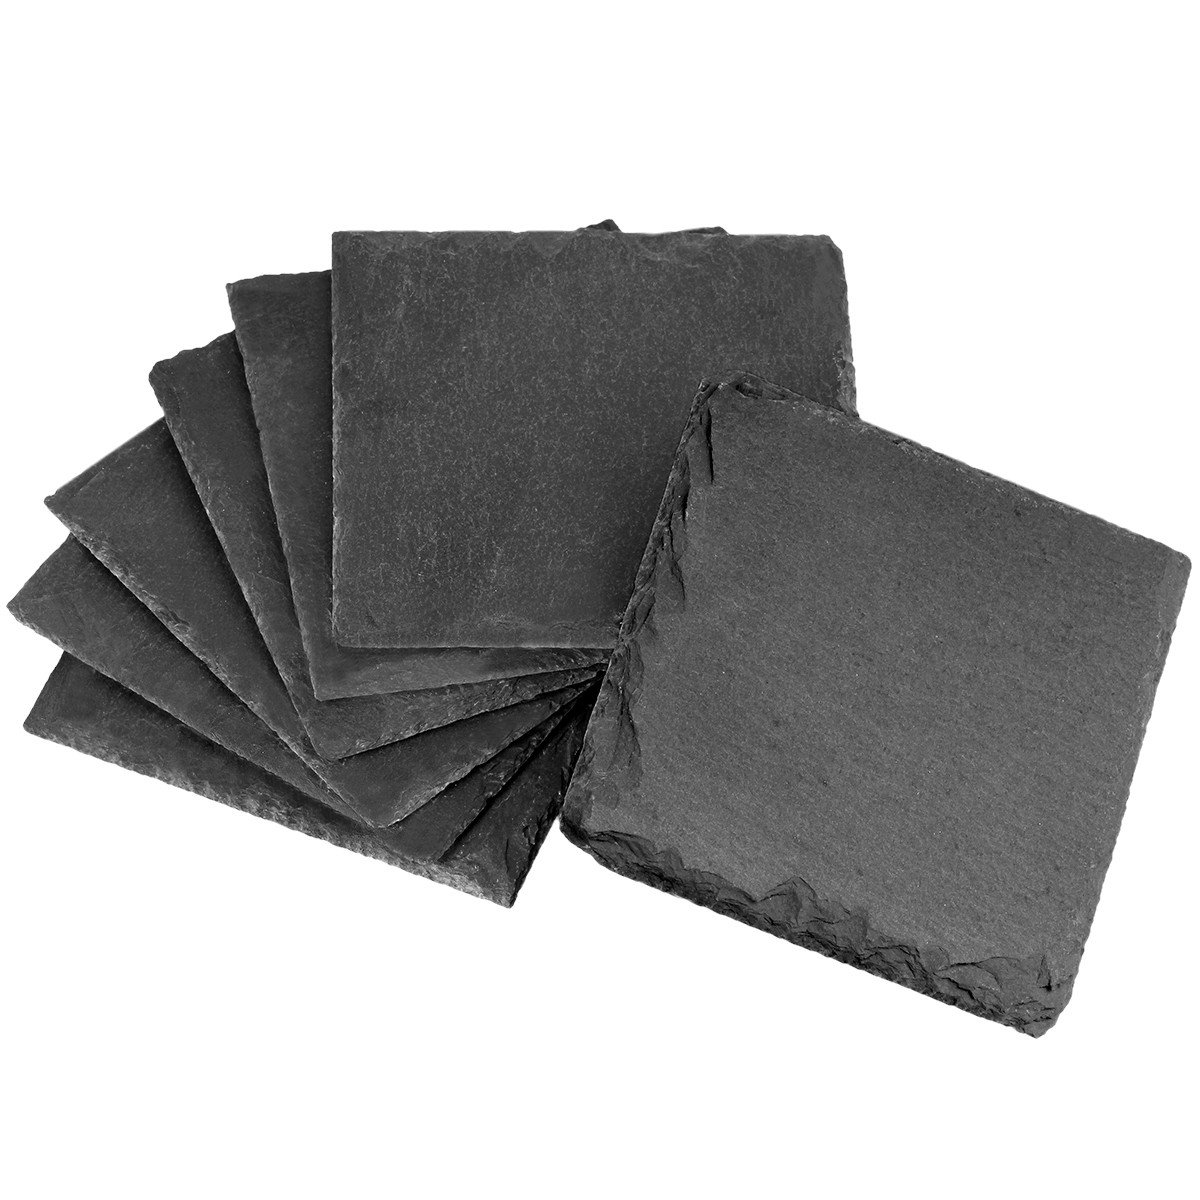 Beverages mookaitedecor 4 Inch Square Slate Coasters Set of 4 Wine Glasses Cup Mats Coasters for Drinks